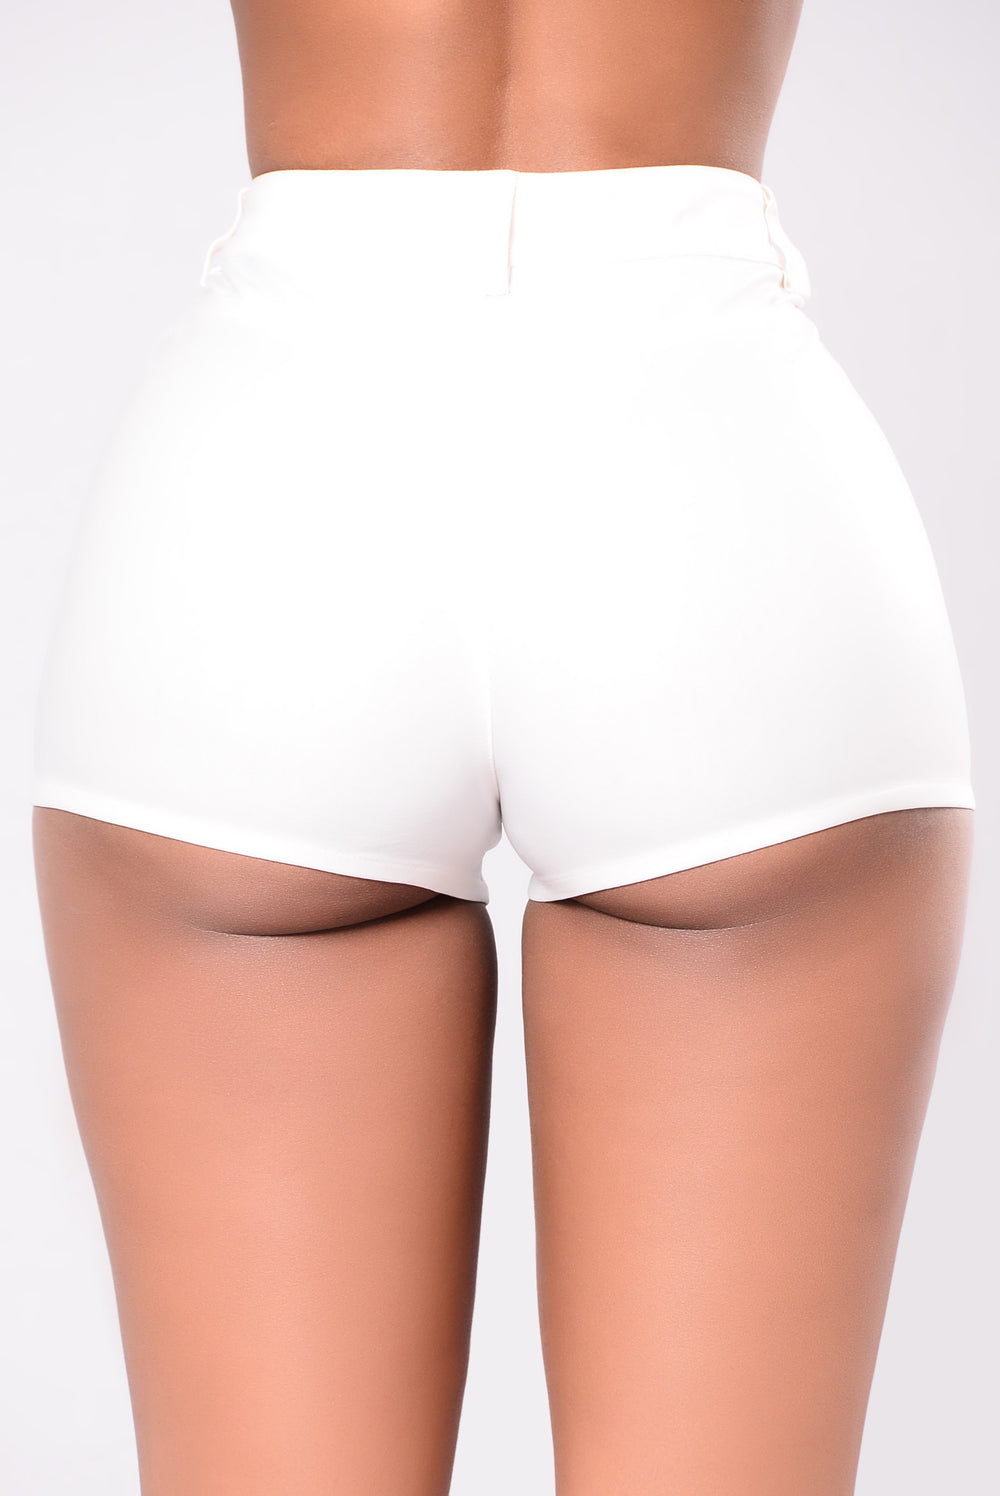 I Confess Shorts - White